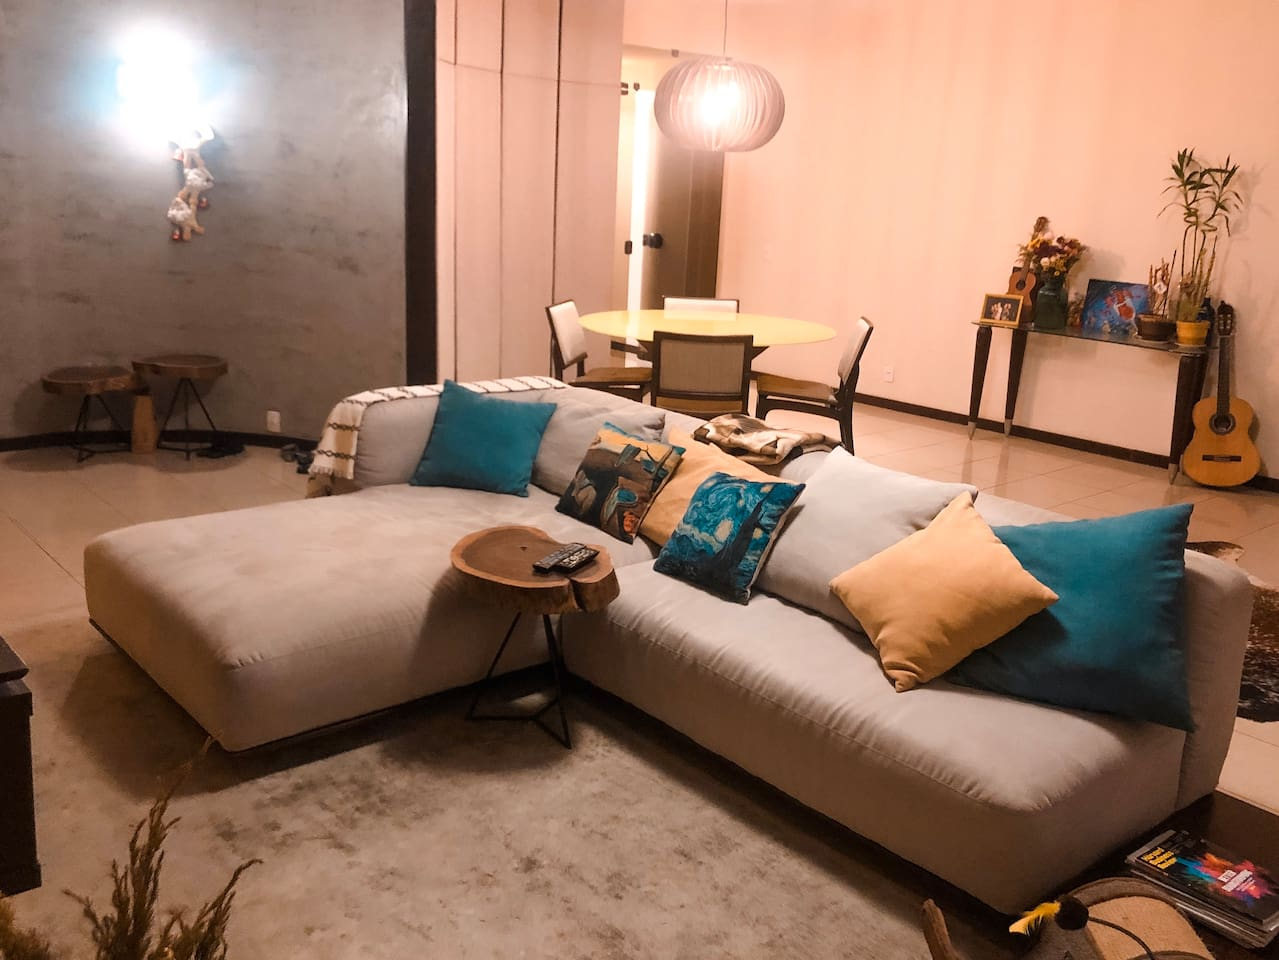 One of the most comfortable and stylish spot at home